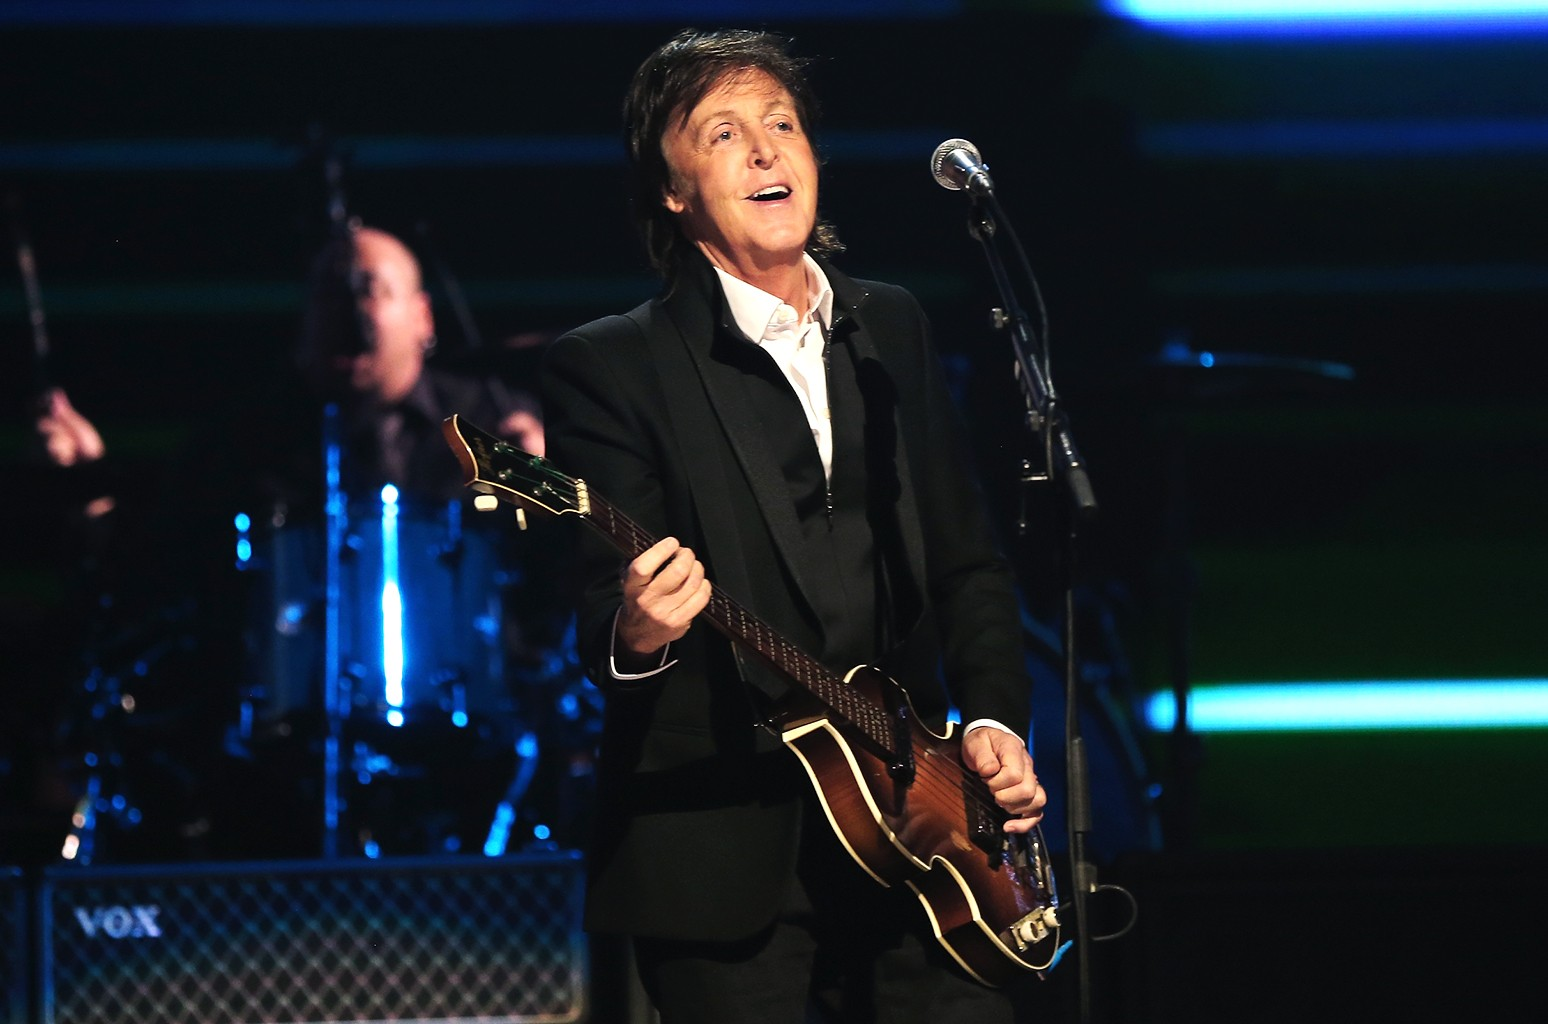 Sir Paul McCartney performs onstage during the iHeartRadio Music Festival at the MGM Grand Garden Arena on Sept. 21, 2013 in Las Vegas.